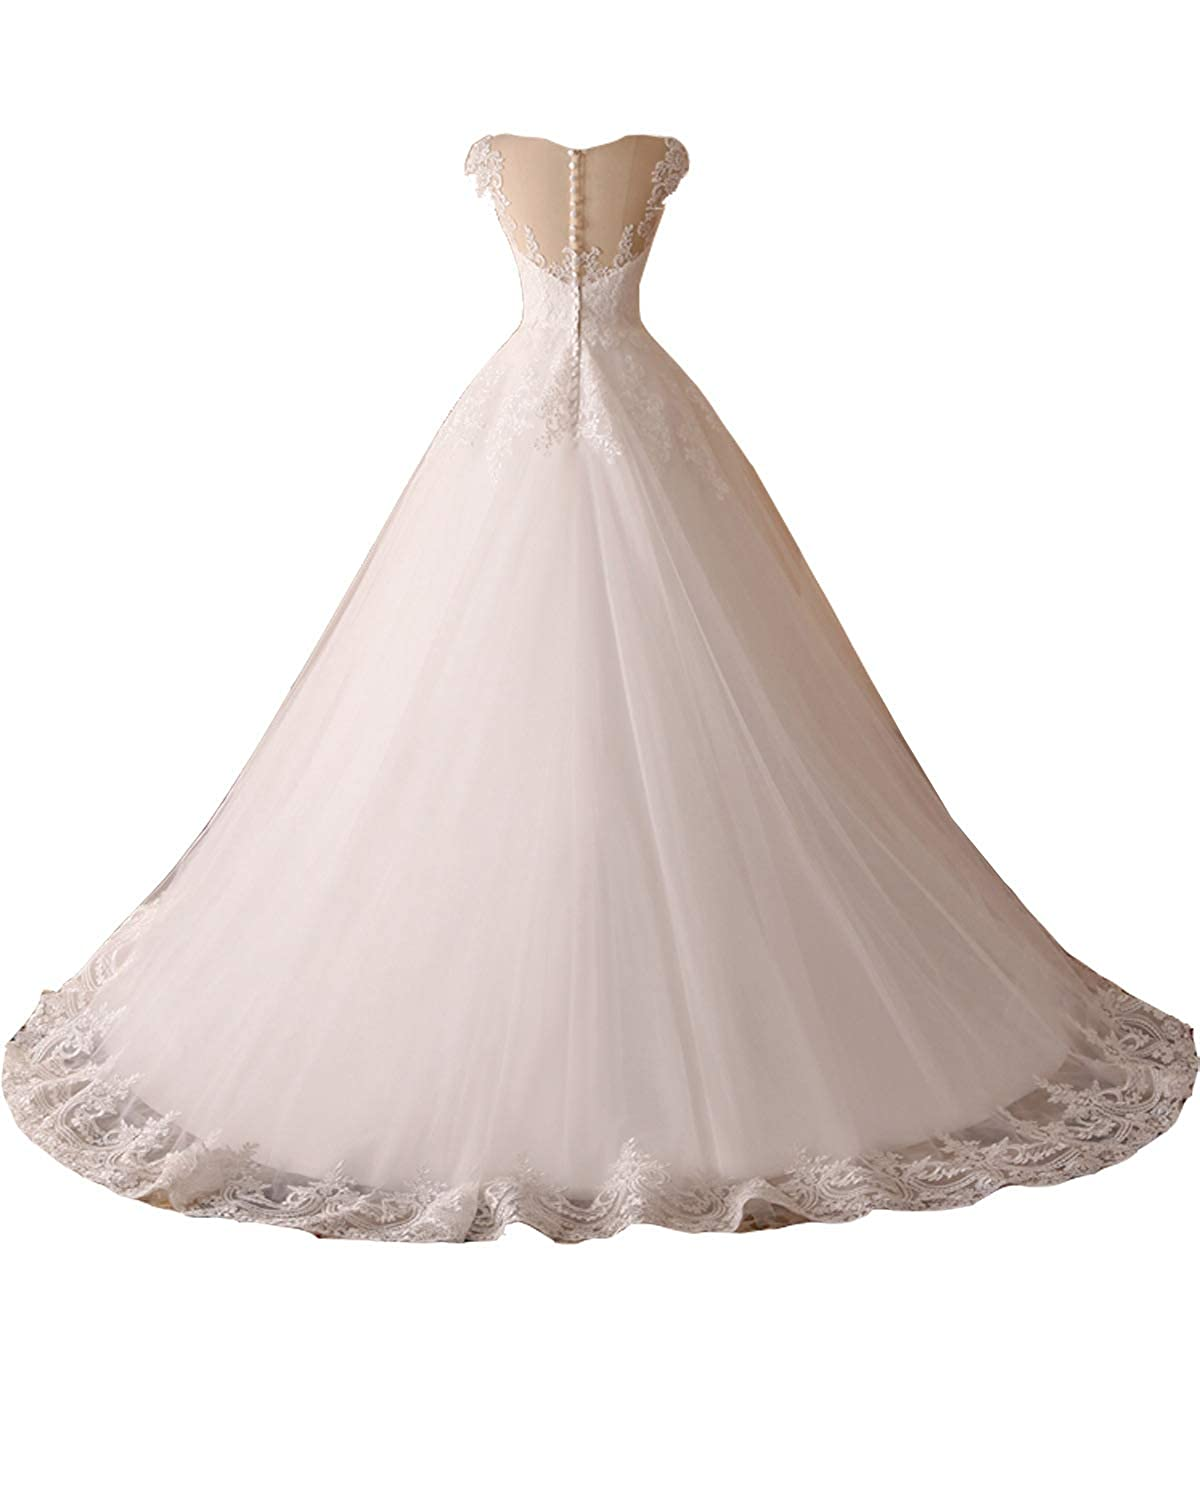 Kittydress Womens Long Tulle Lace Applique Wedding Dresses Sweetheart Bridal Gowns with Train